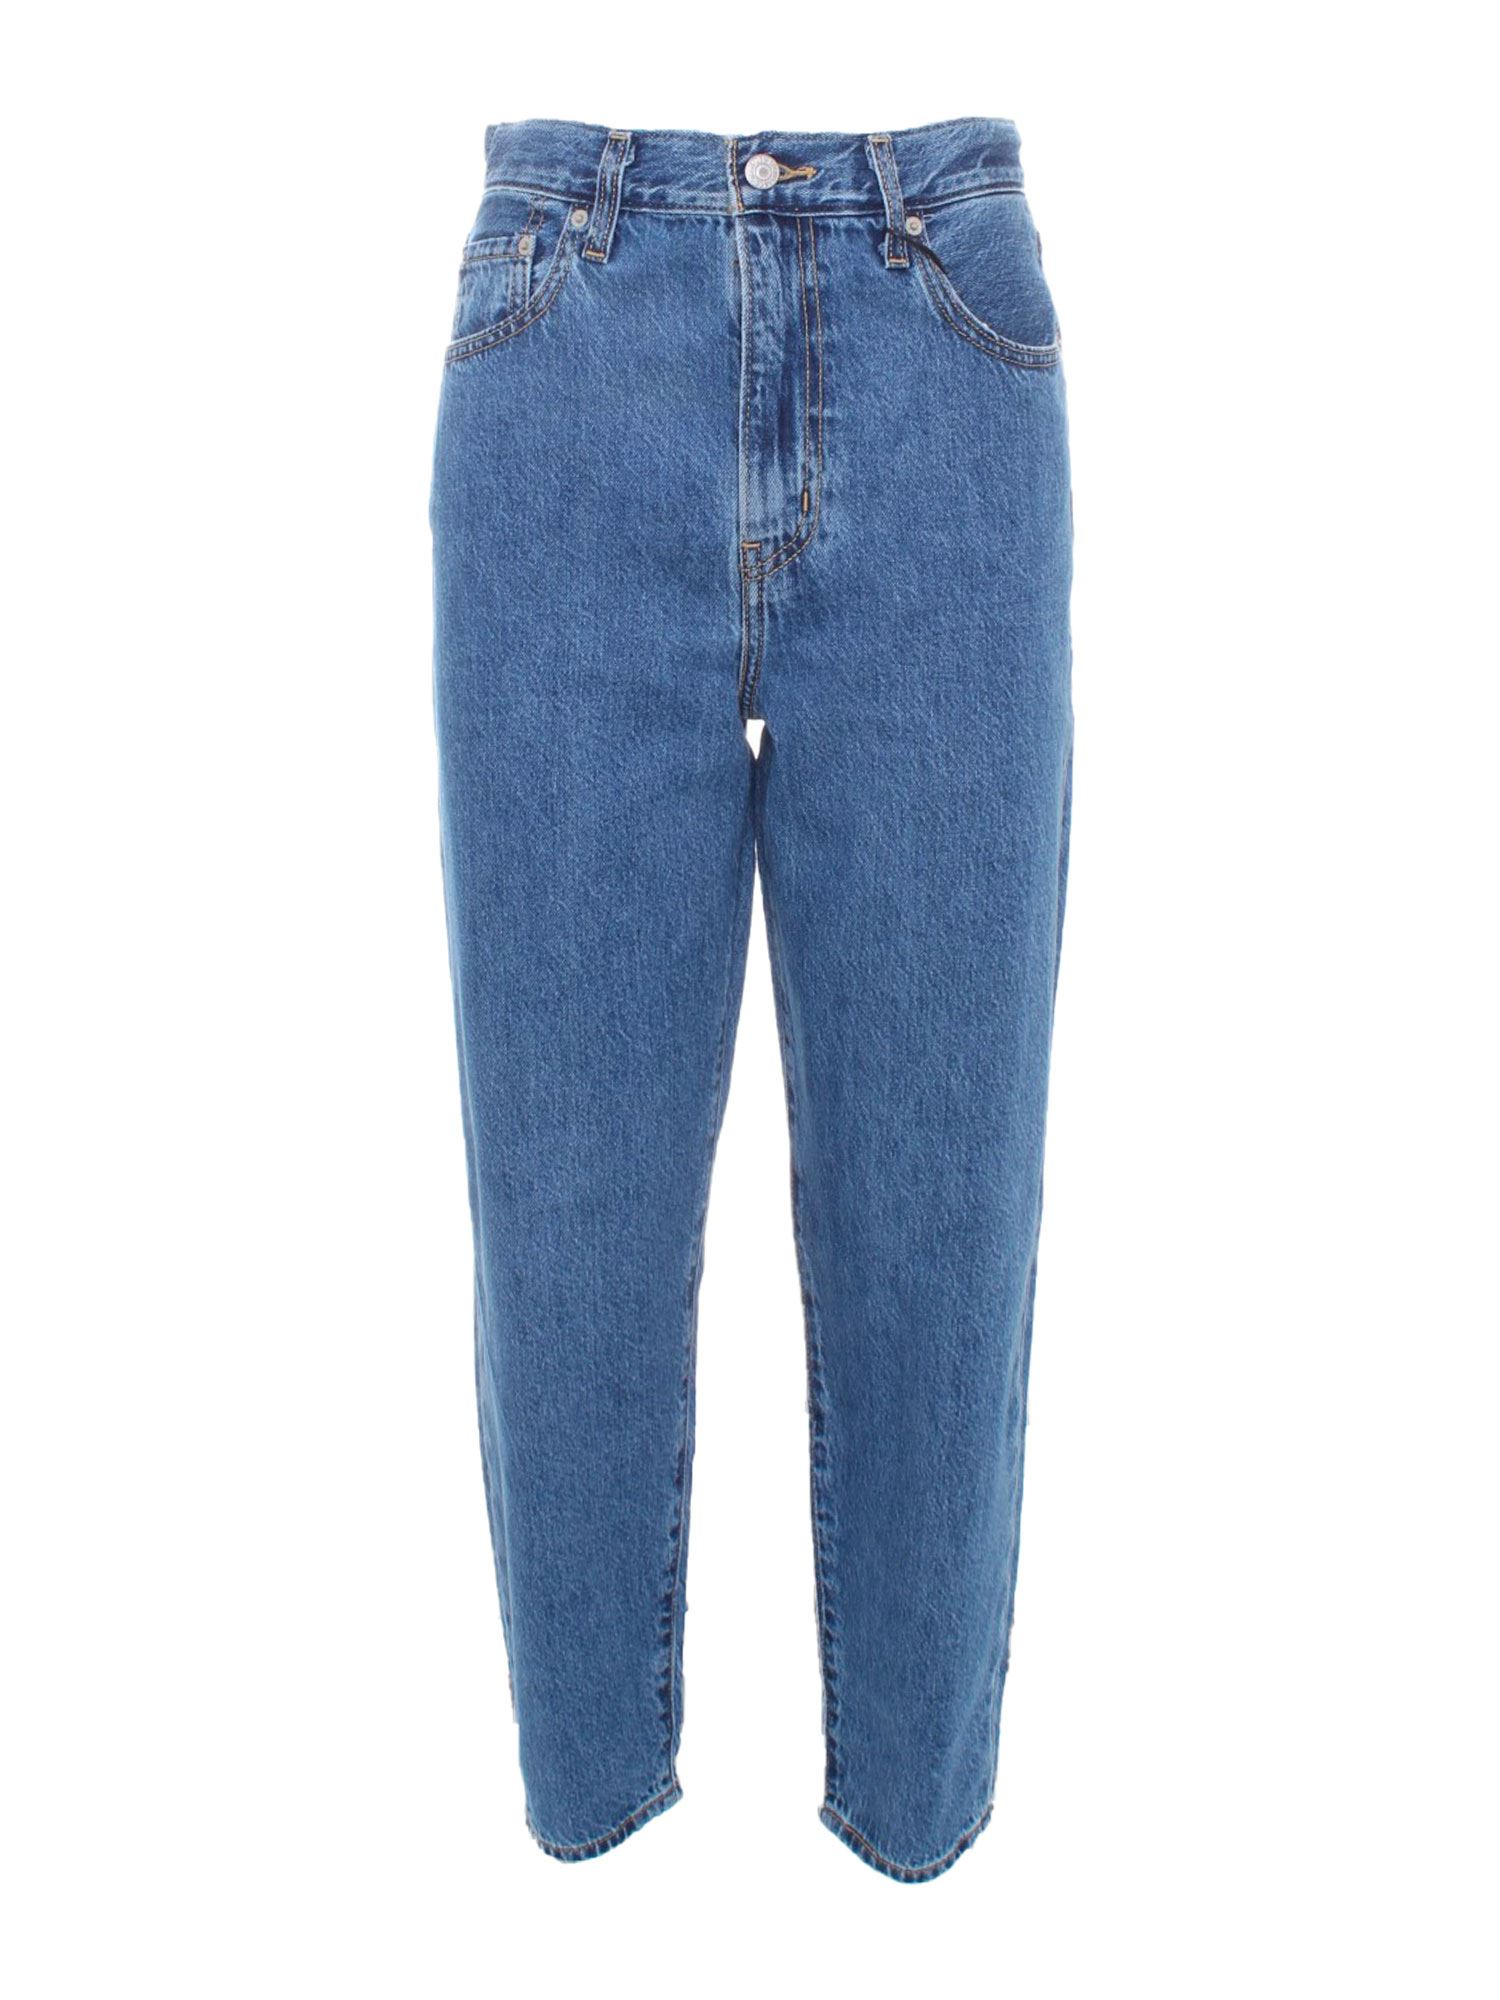 Levi's LEVI'S HIGH LOOSE TAPER JEANS IN BLUE